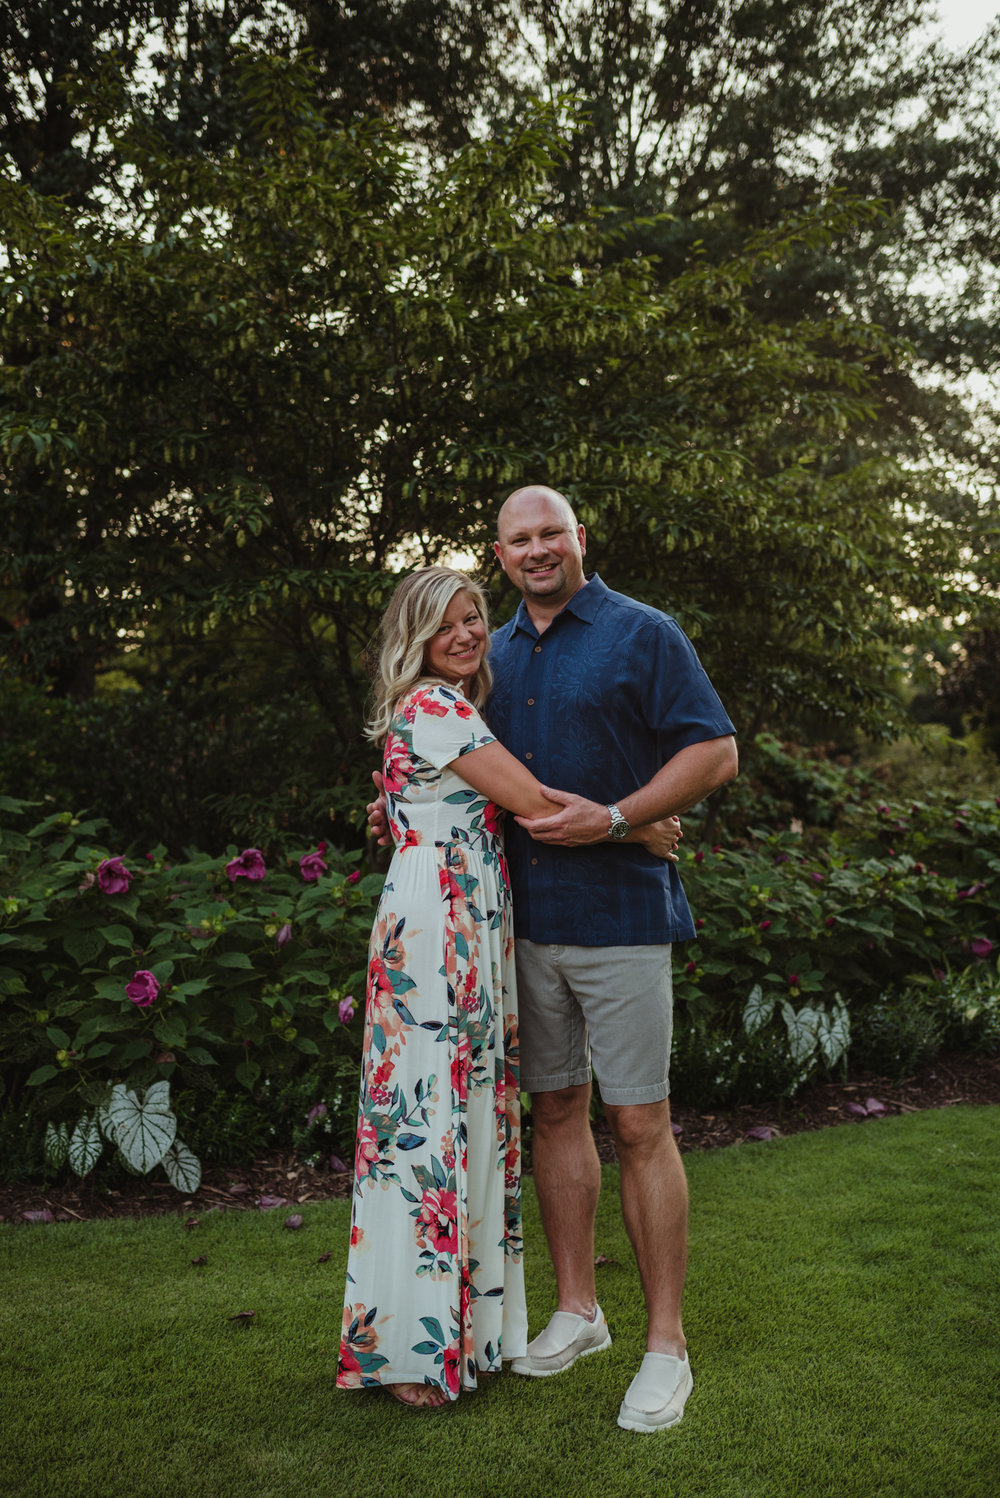 The bride and groom hold each other in the garden during their engagement session at Fred Fletcher Park in Raleigh, North Carolina with Rose Trail Images.